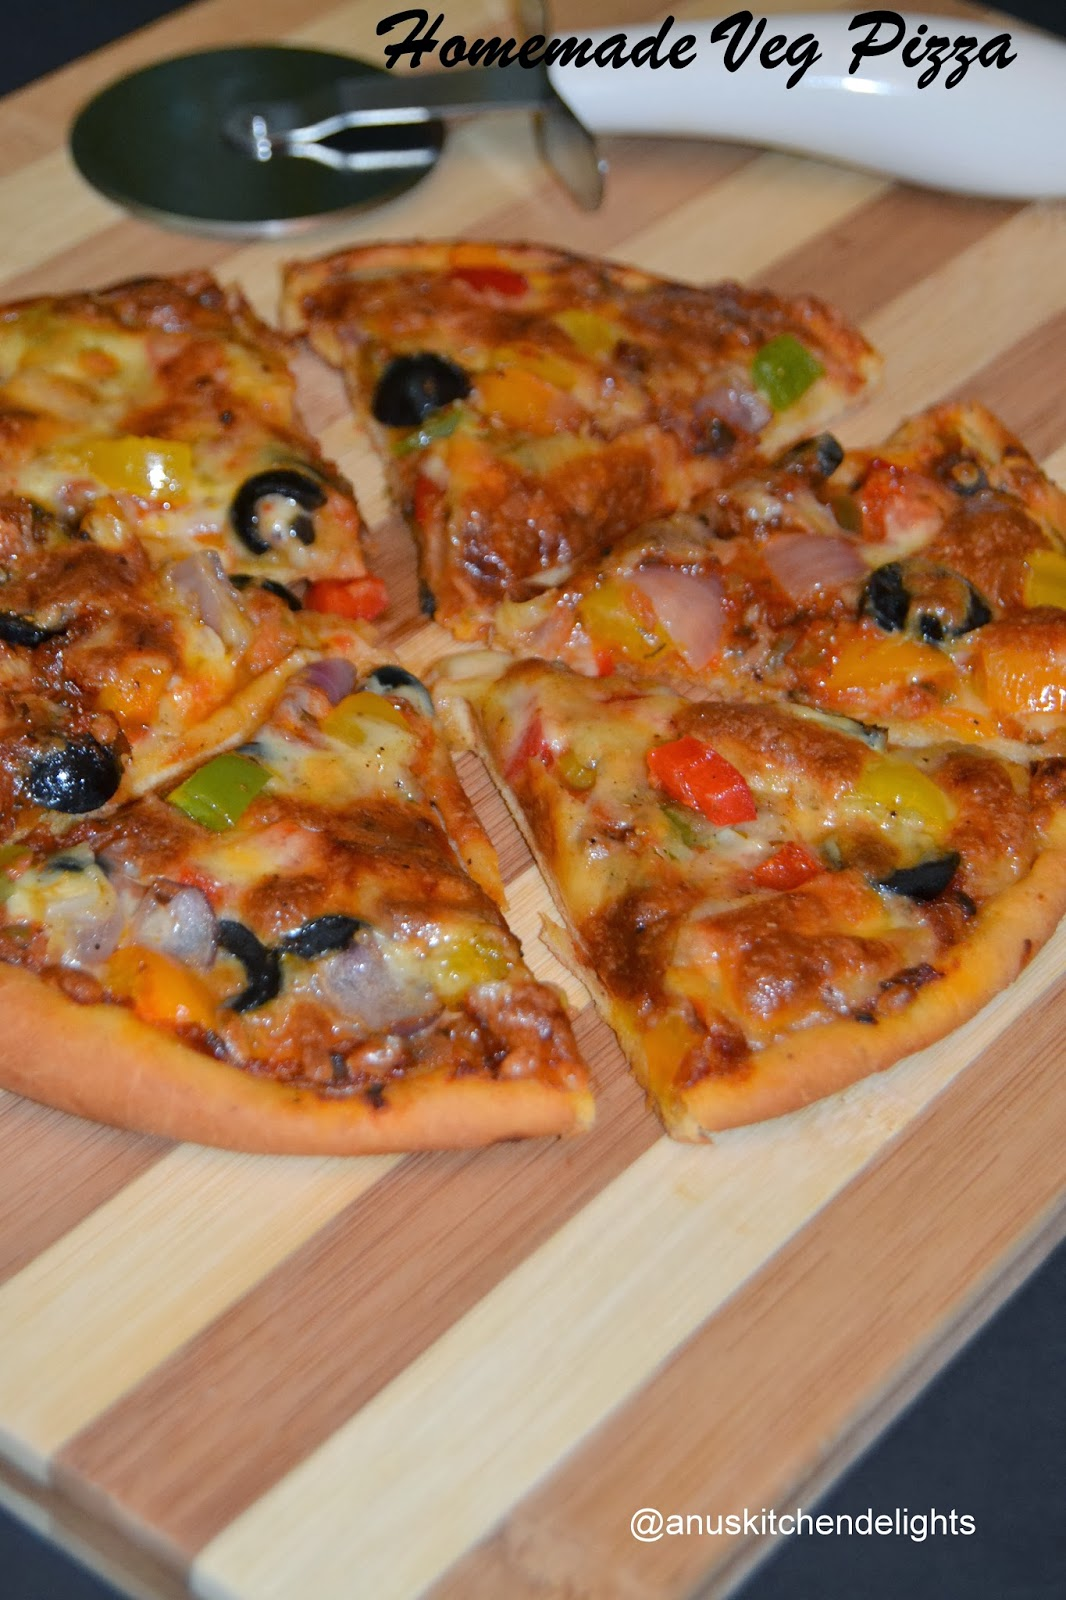 Home made Veg Pizza